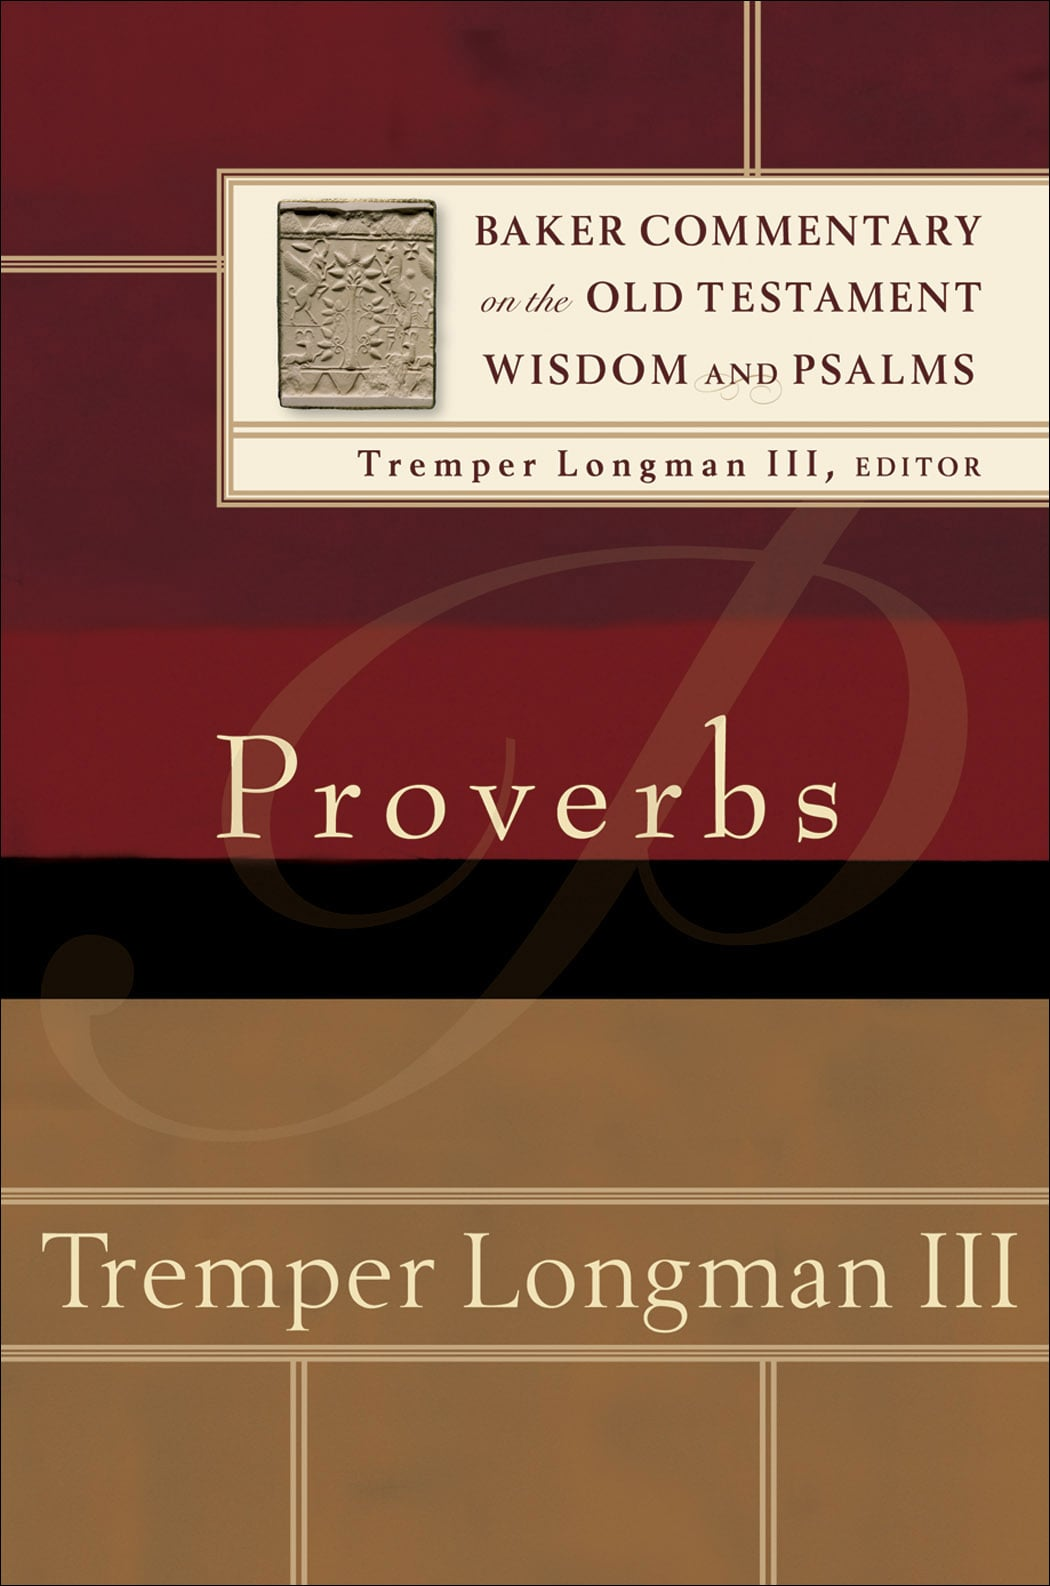 Commentaries On The Times: Top 5 Commentaries On The Book Of Proverbs